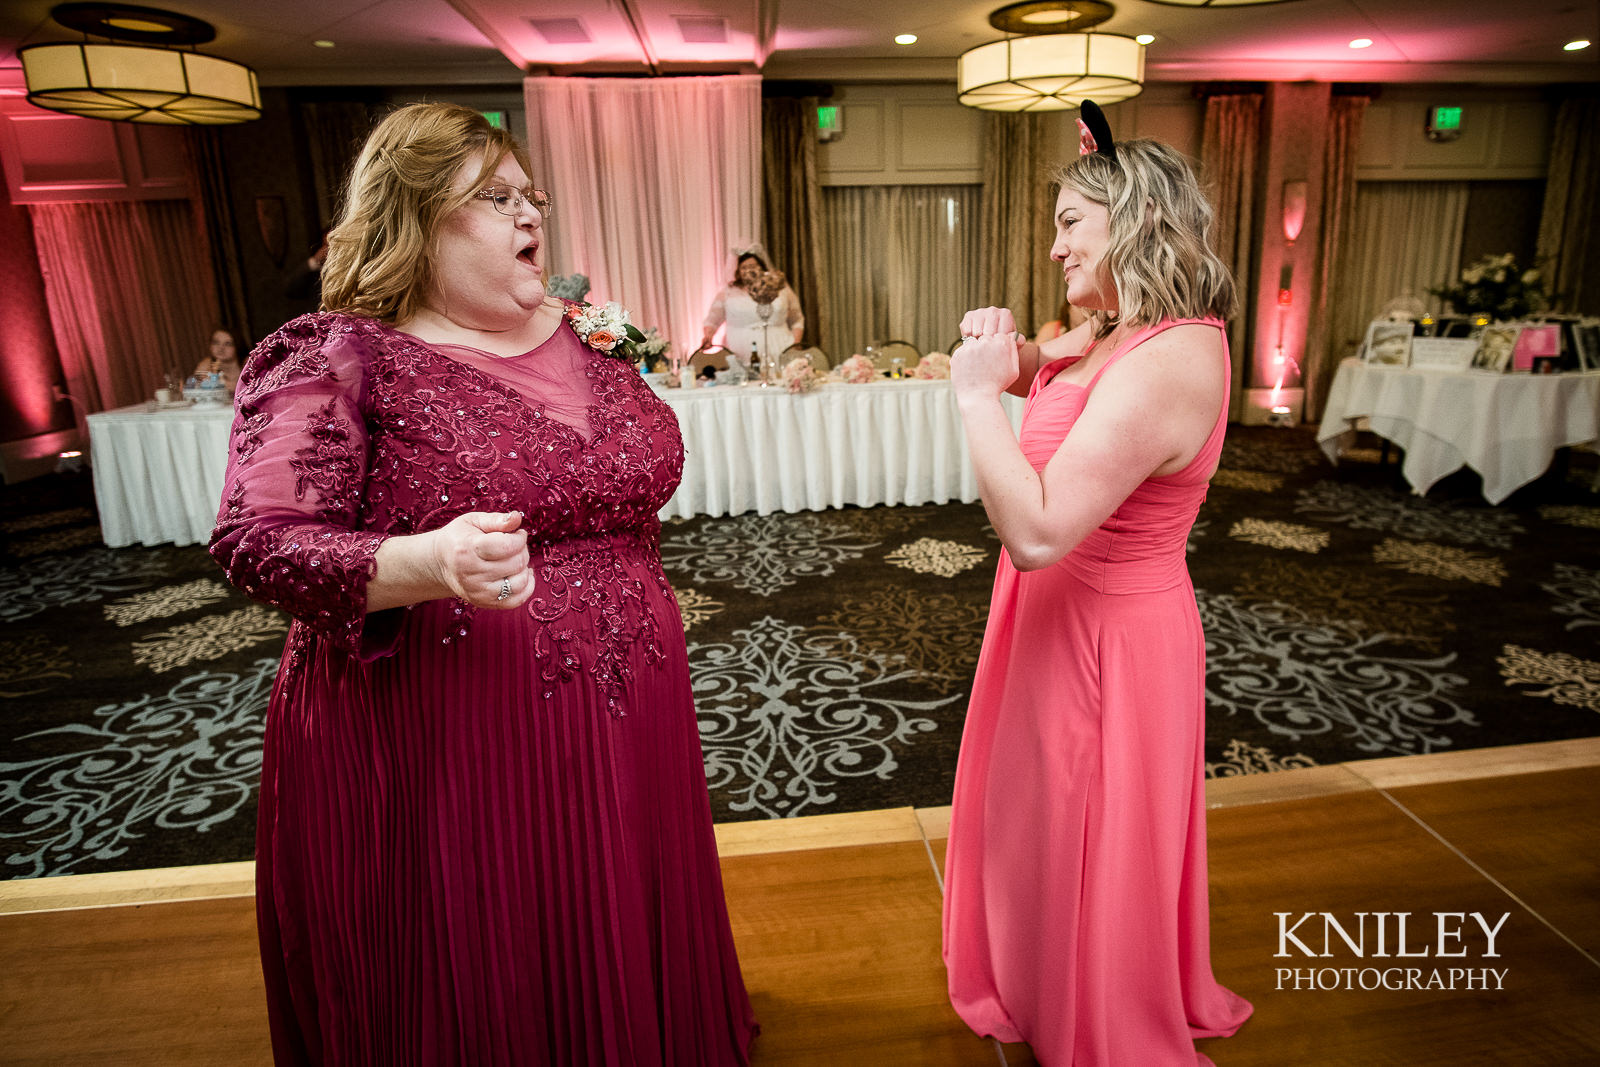 113 - Woodcliff Hotel - Rochester NY wedding photo - Kniley Photography.jpg